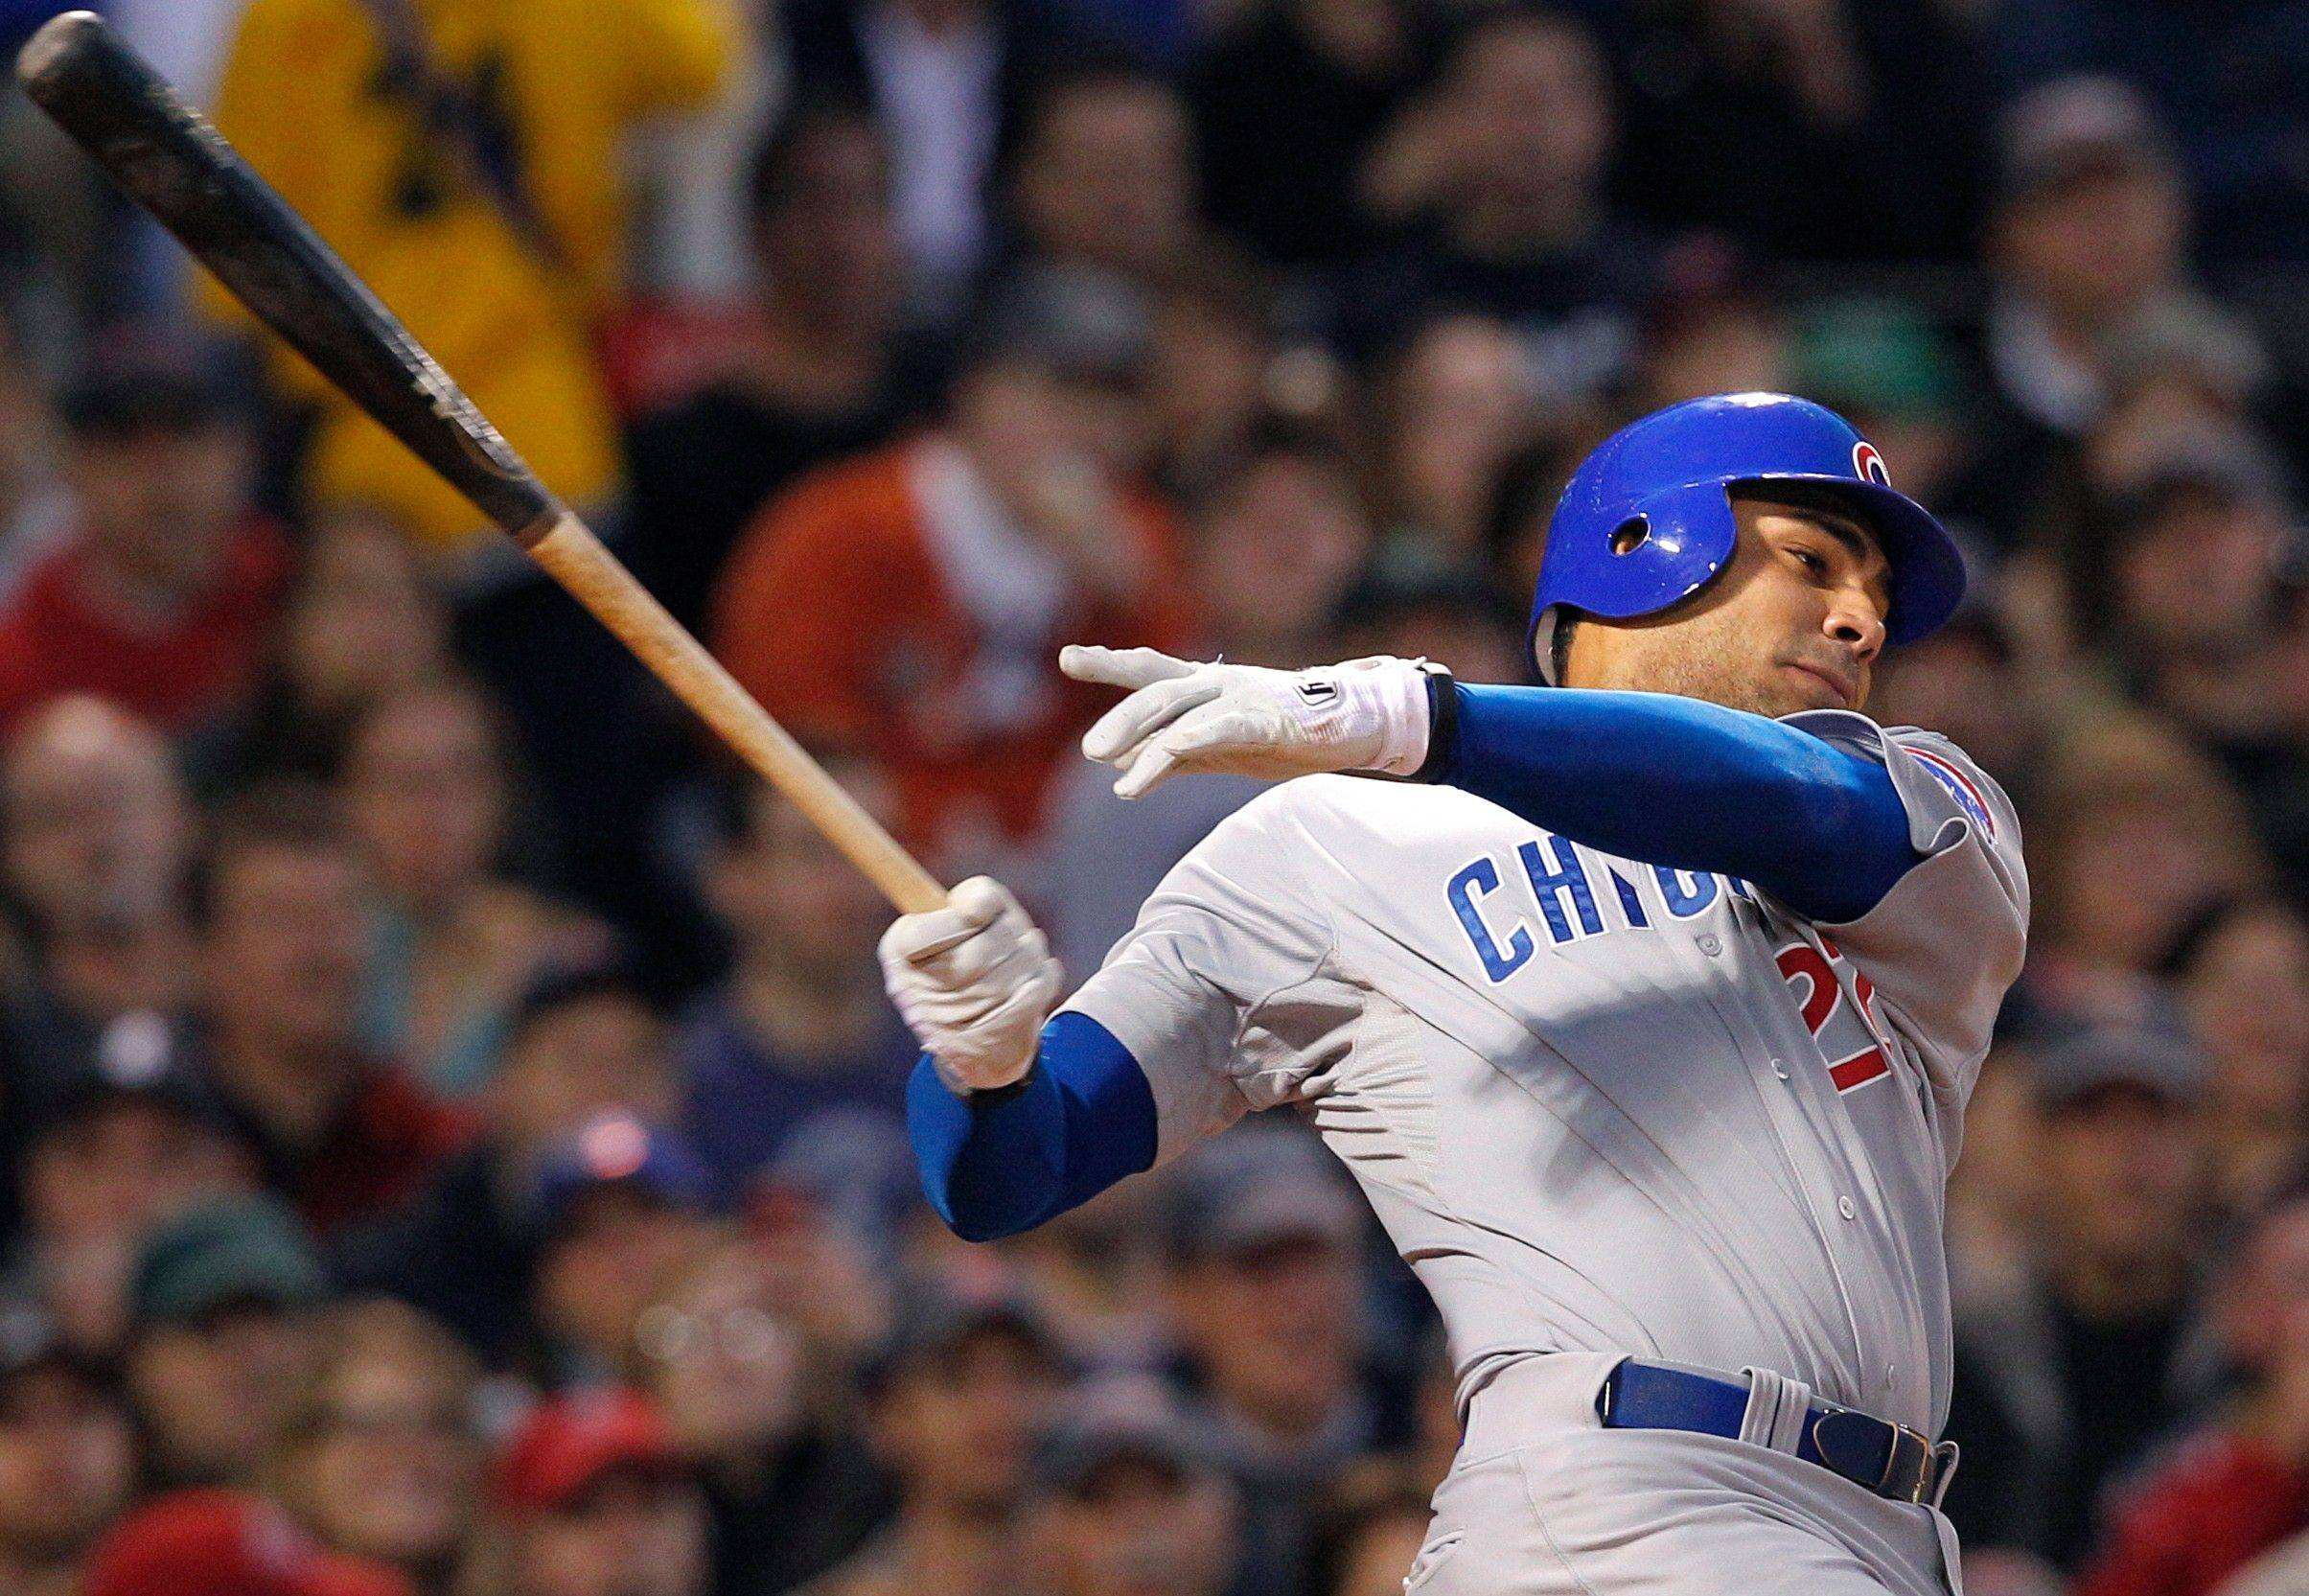 Chicago Cubs' Carlos Pena hits an RBI grounder to drive in Jeff Baker in the third inning of an interleague baseball game against the Boston Red Sox at Fenway Park in Boston Friday, May 20, 2011.